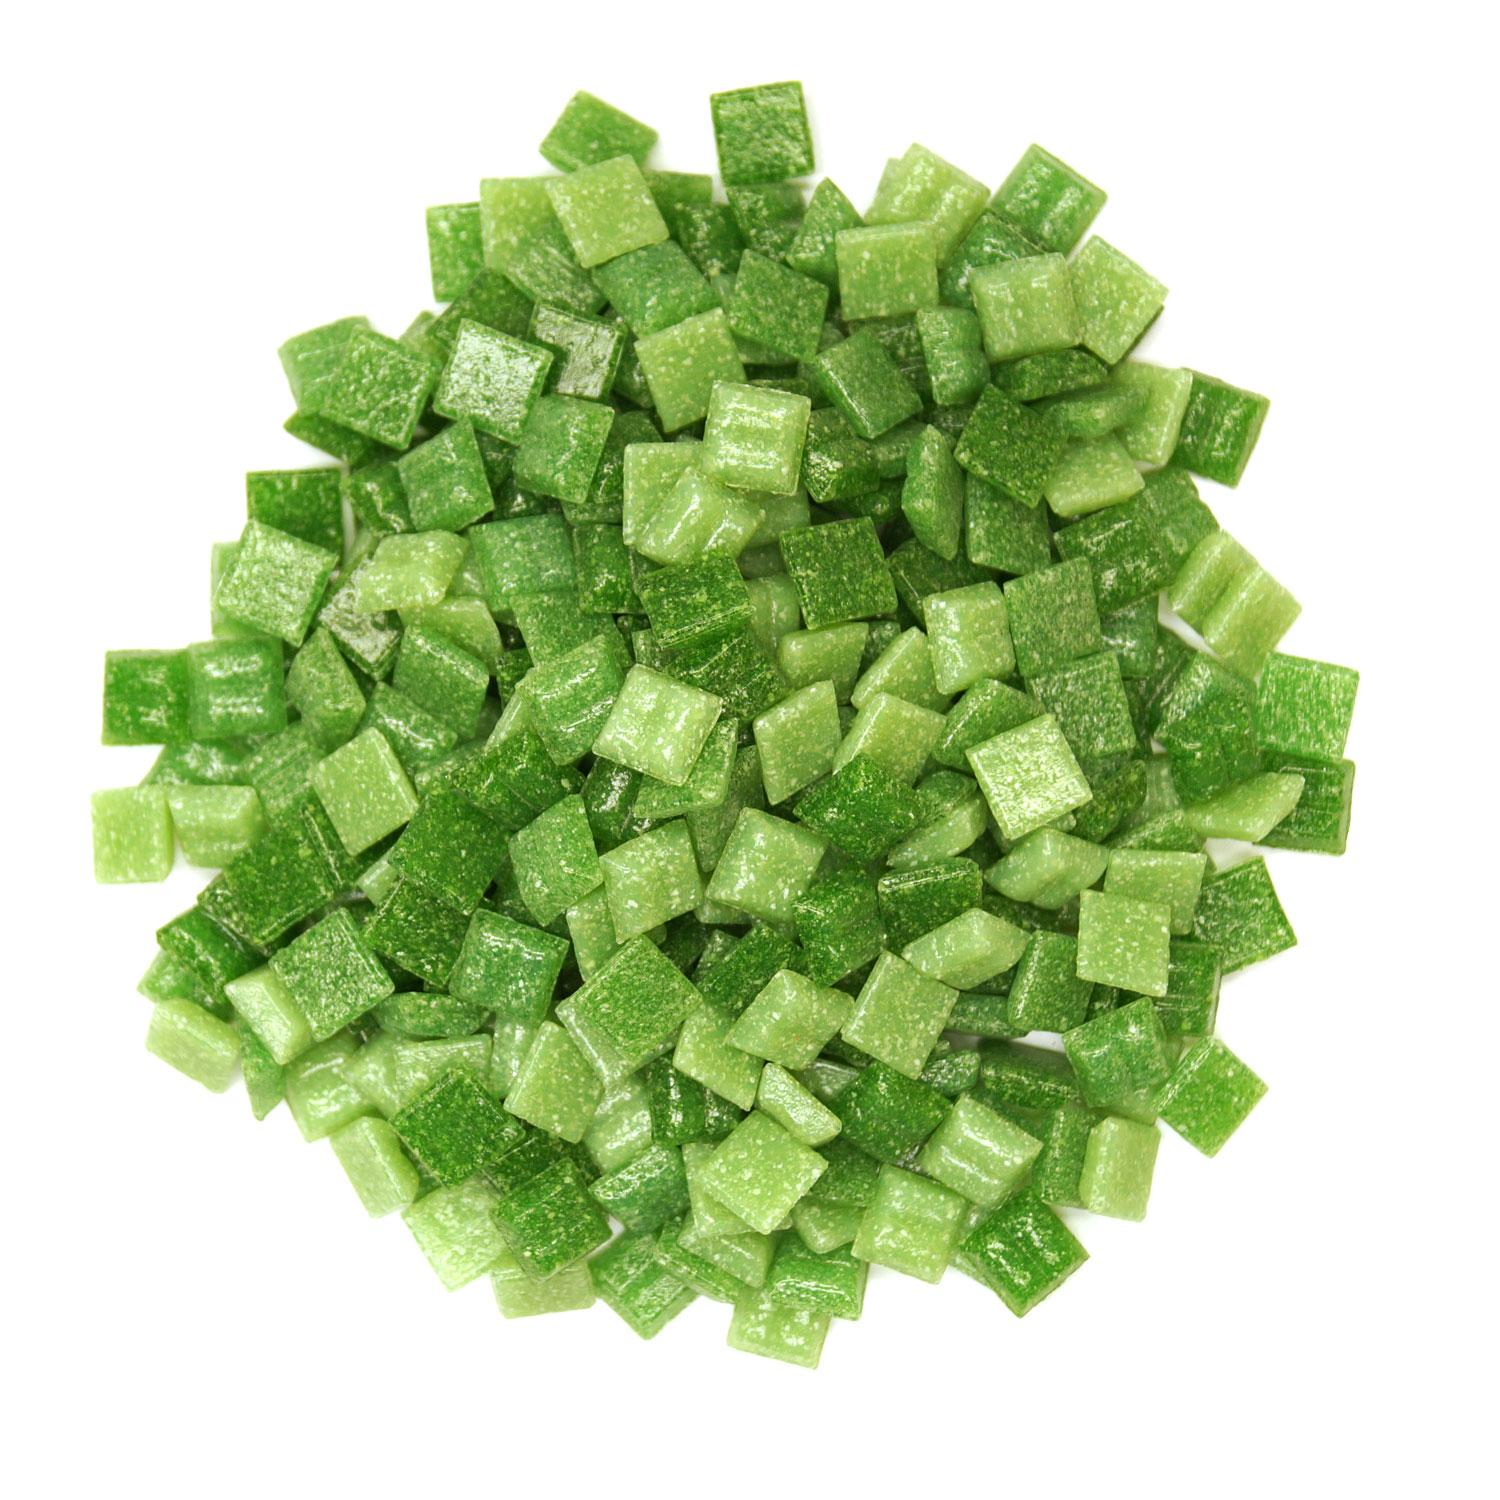 3/8 Grassy Greens Glass Tile Mix - 1/2 lb